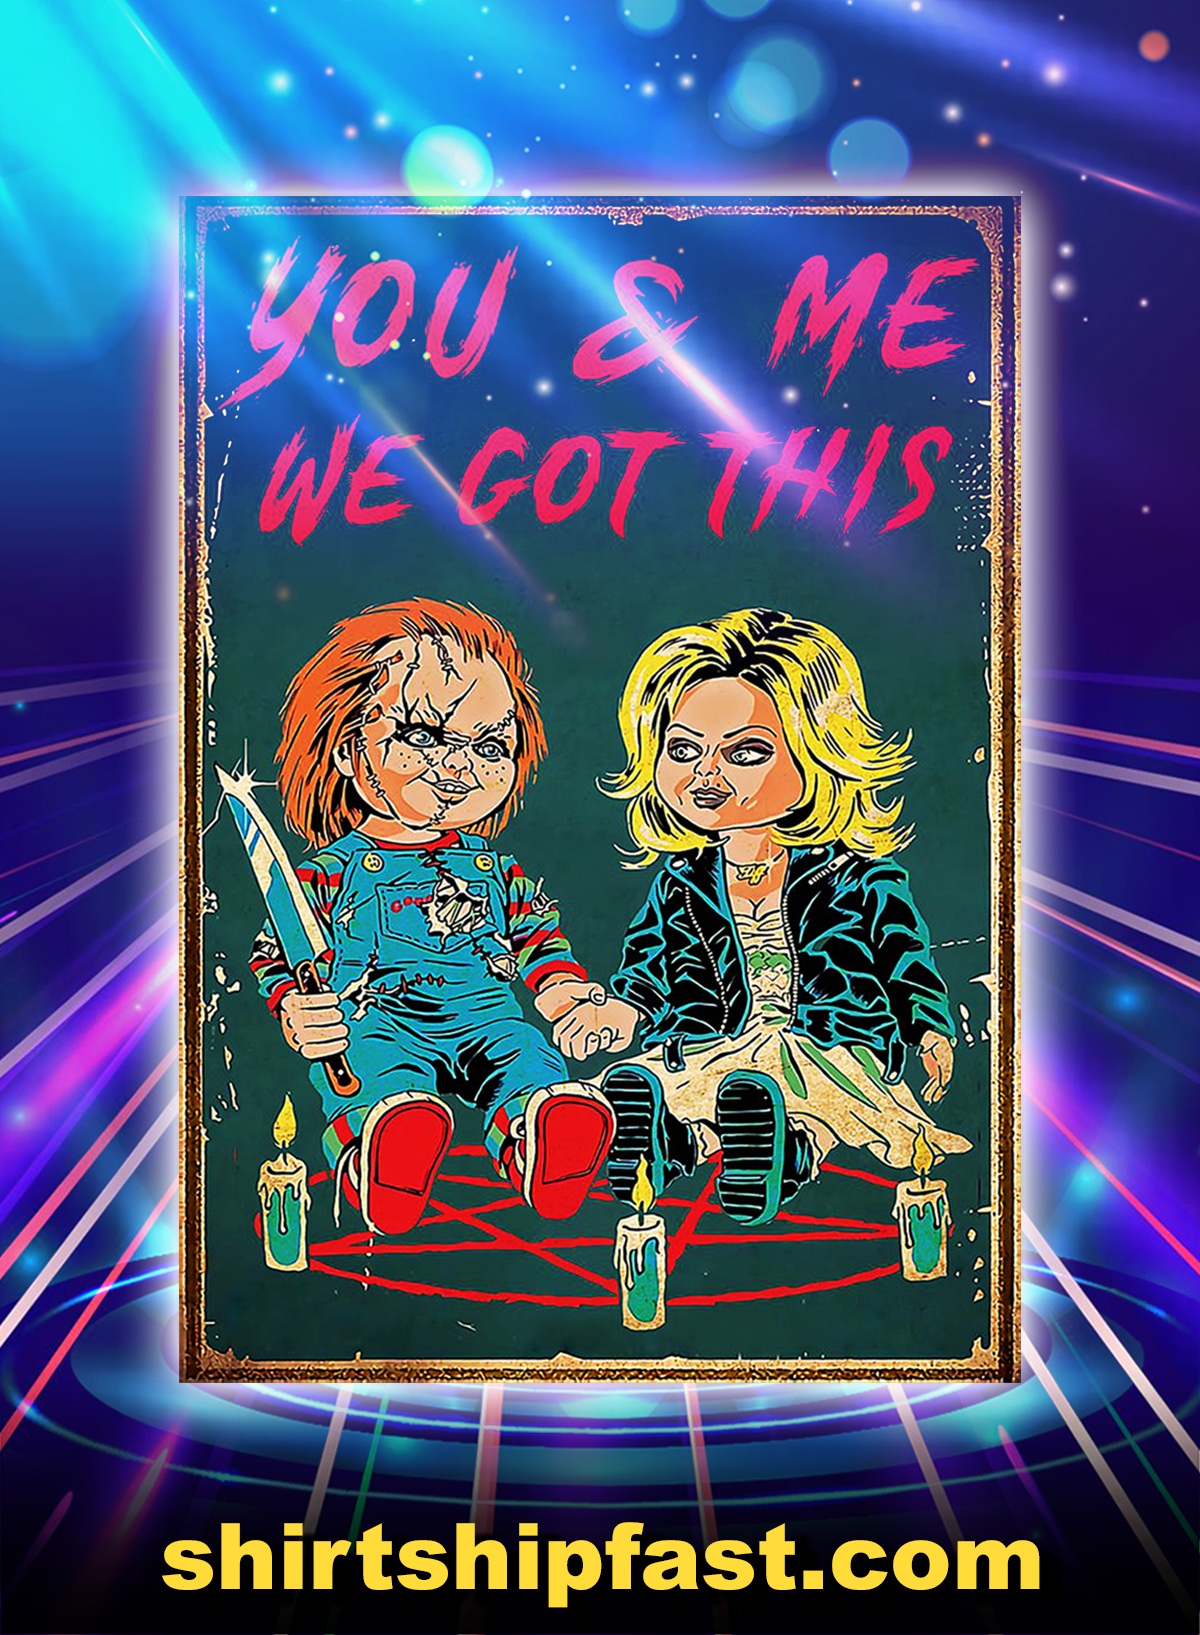 Bride of chucky you and me we got this poster - A1